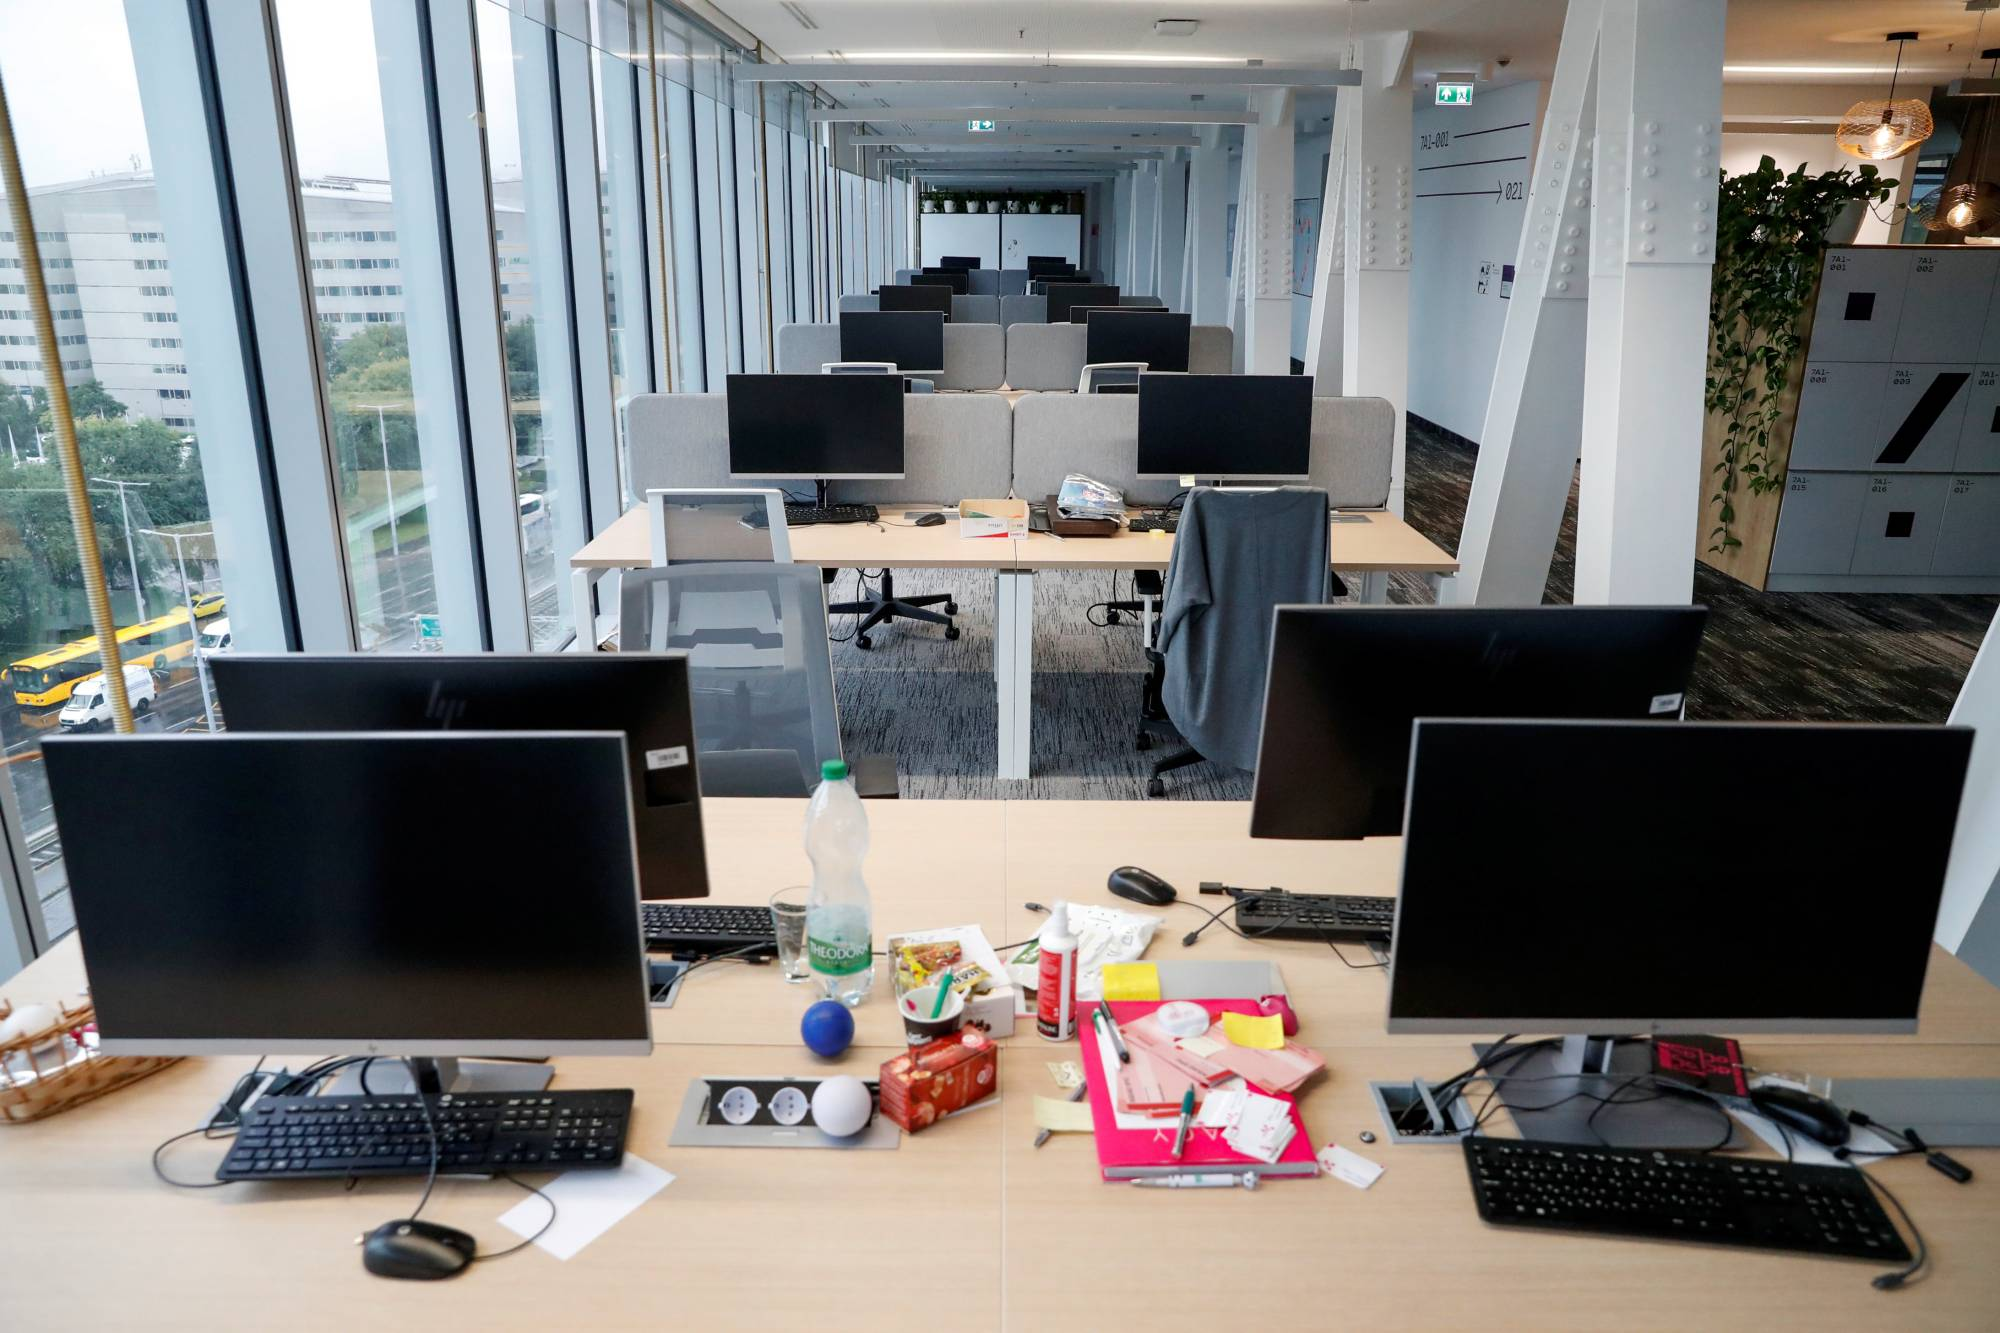 The pace of workers coming back into offices is more of a trickle than a flood, leading to tenants choosing not to renew leases and skyrocketing vacancy rates. | REUTERS